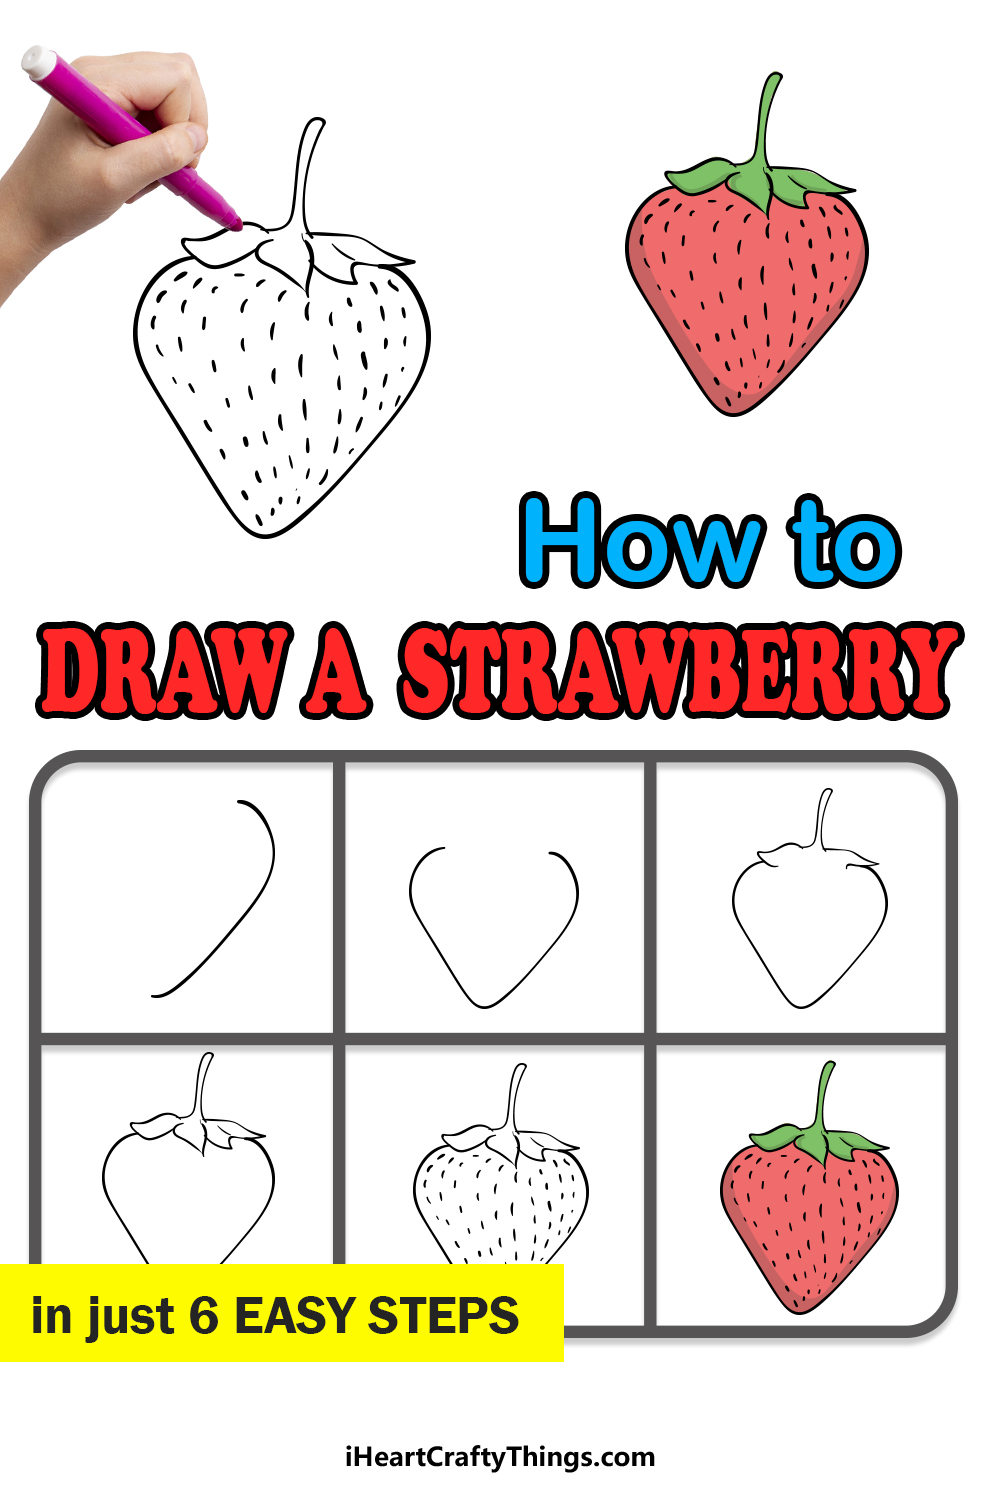 how to draw a strawberry in 6 easy steps